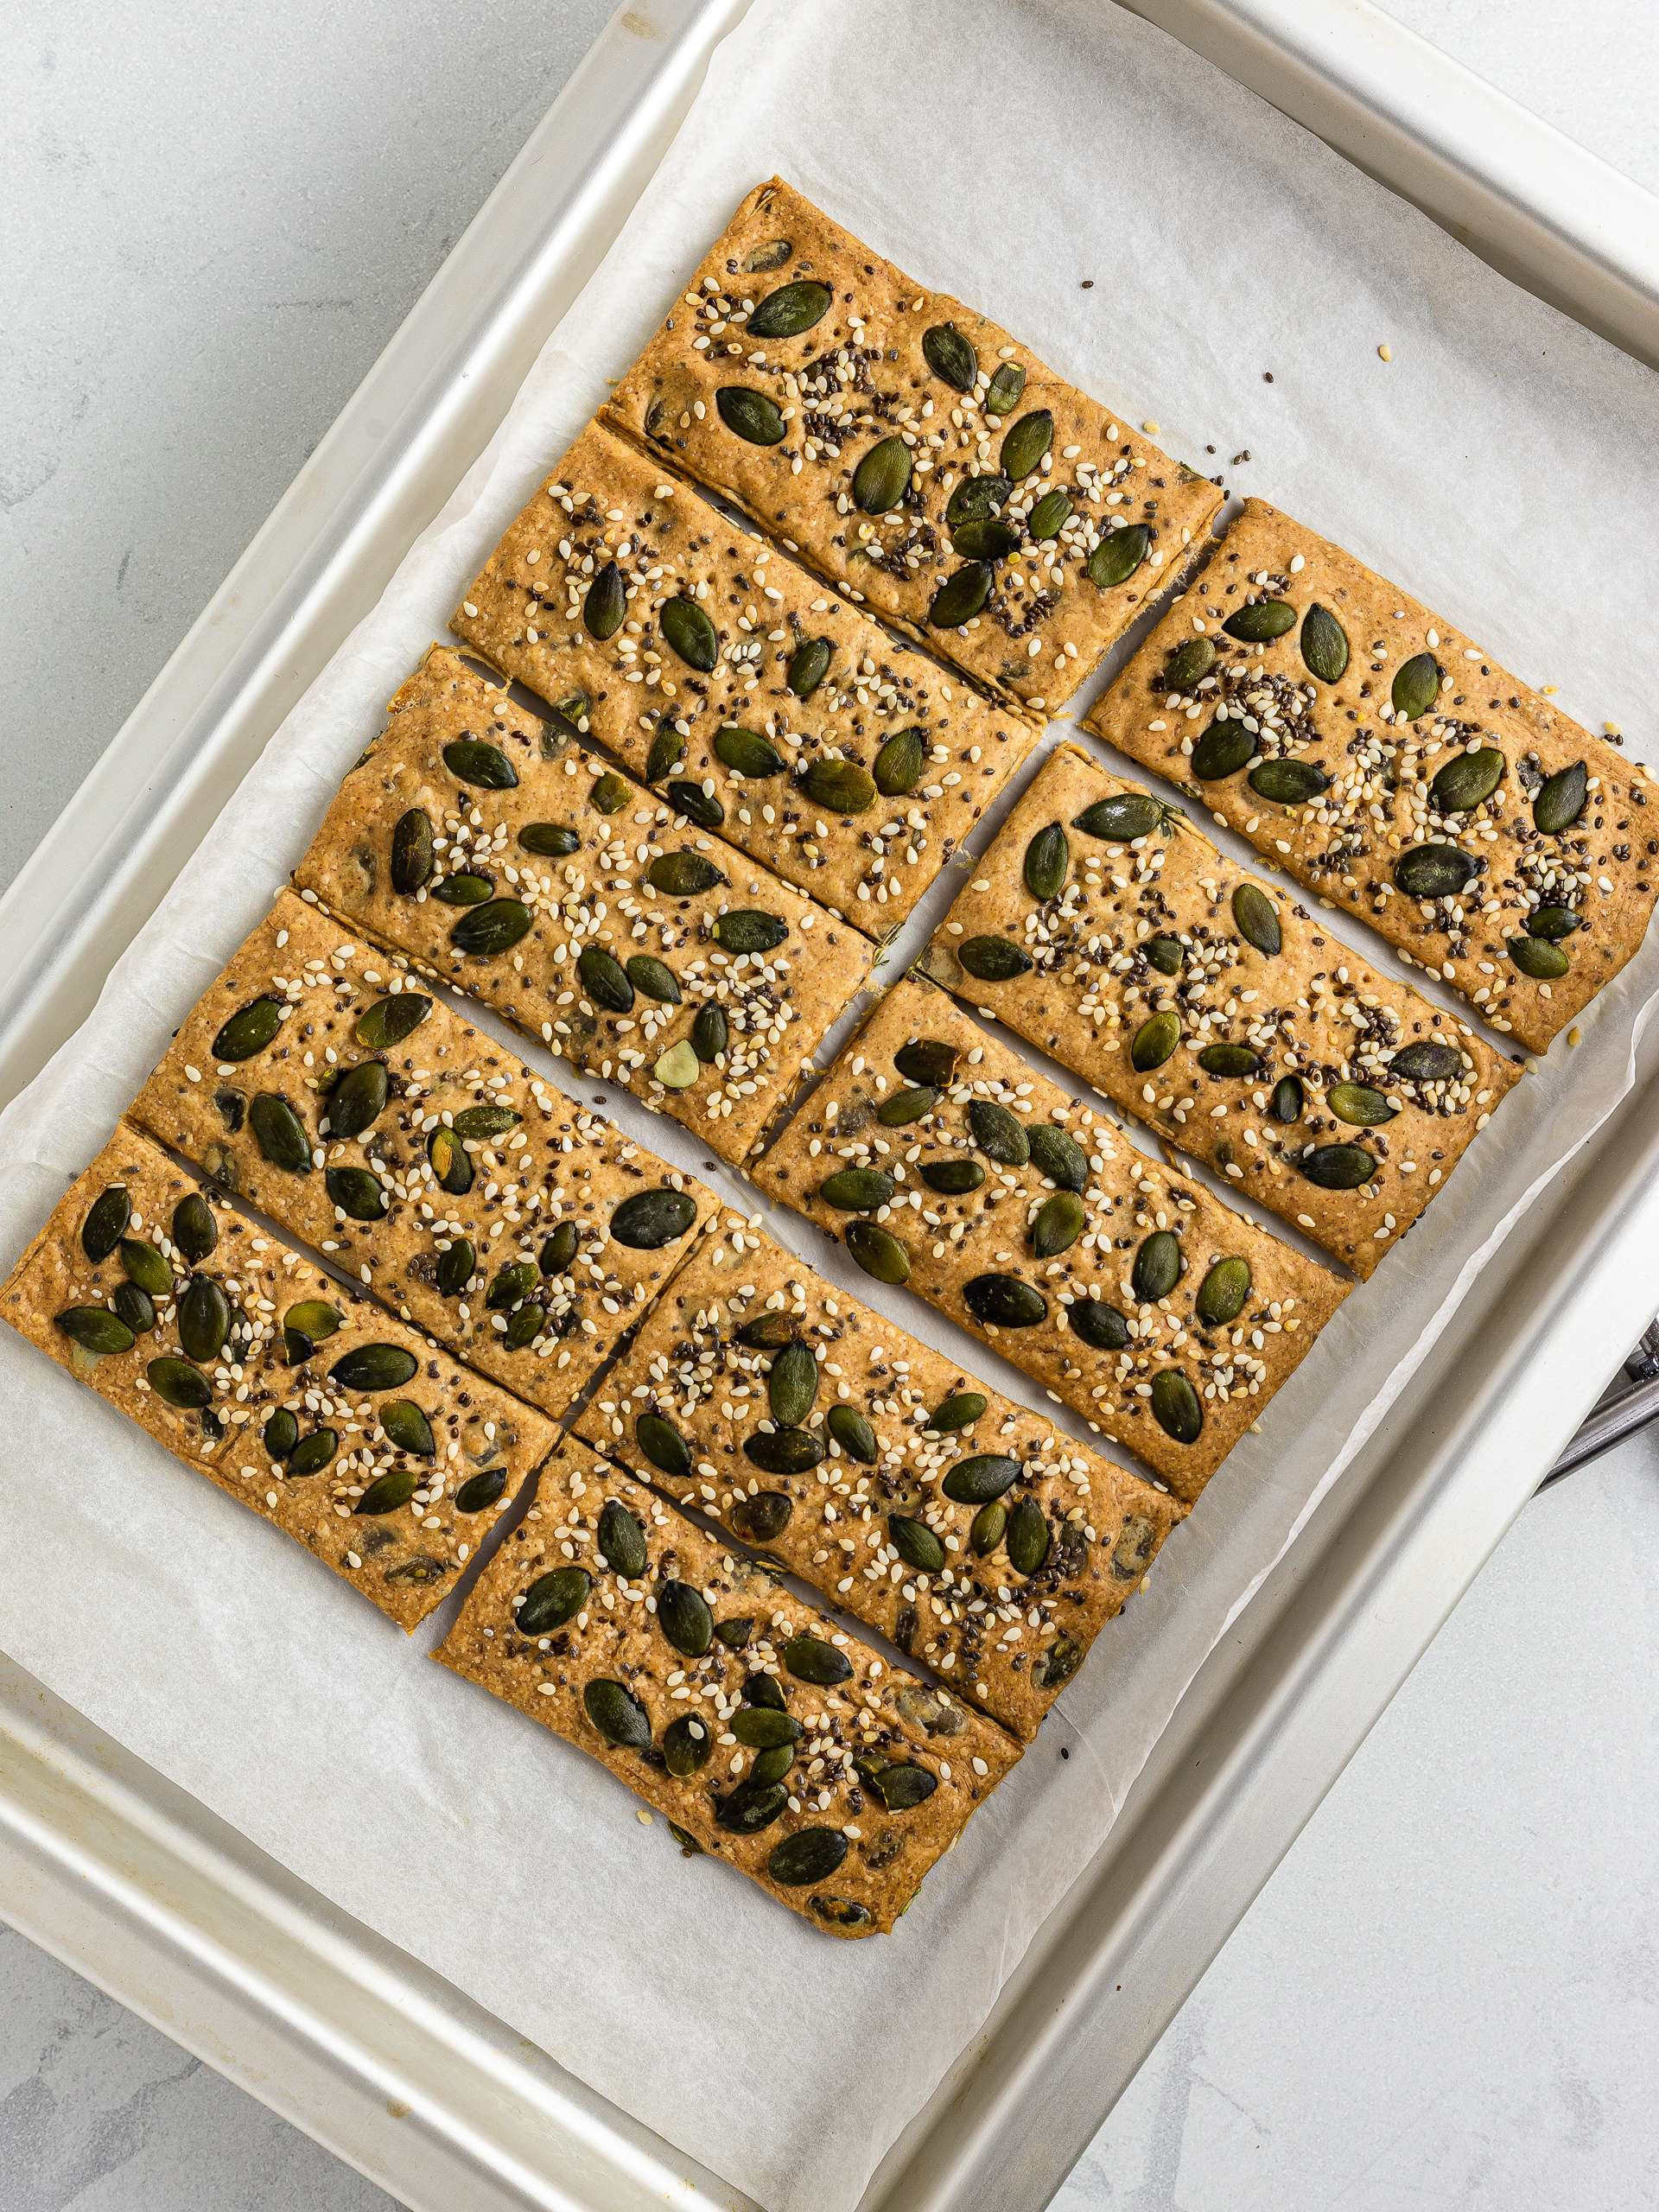 oven-baked spelt crackers on a baking tray